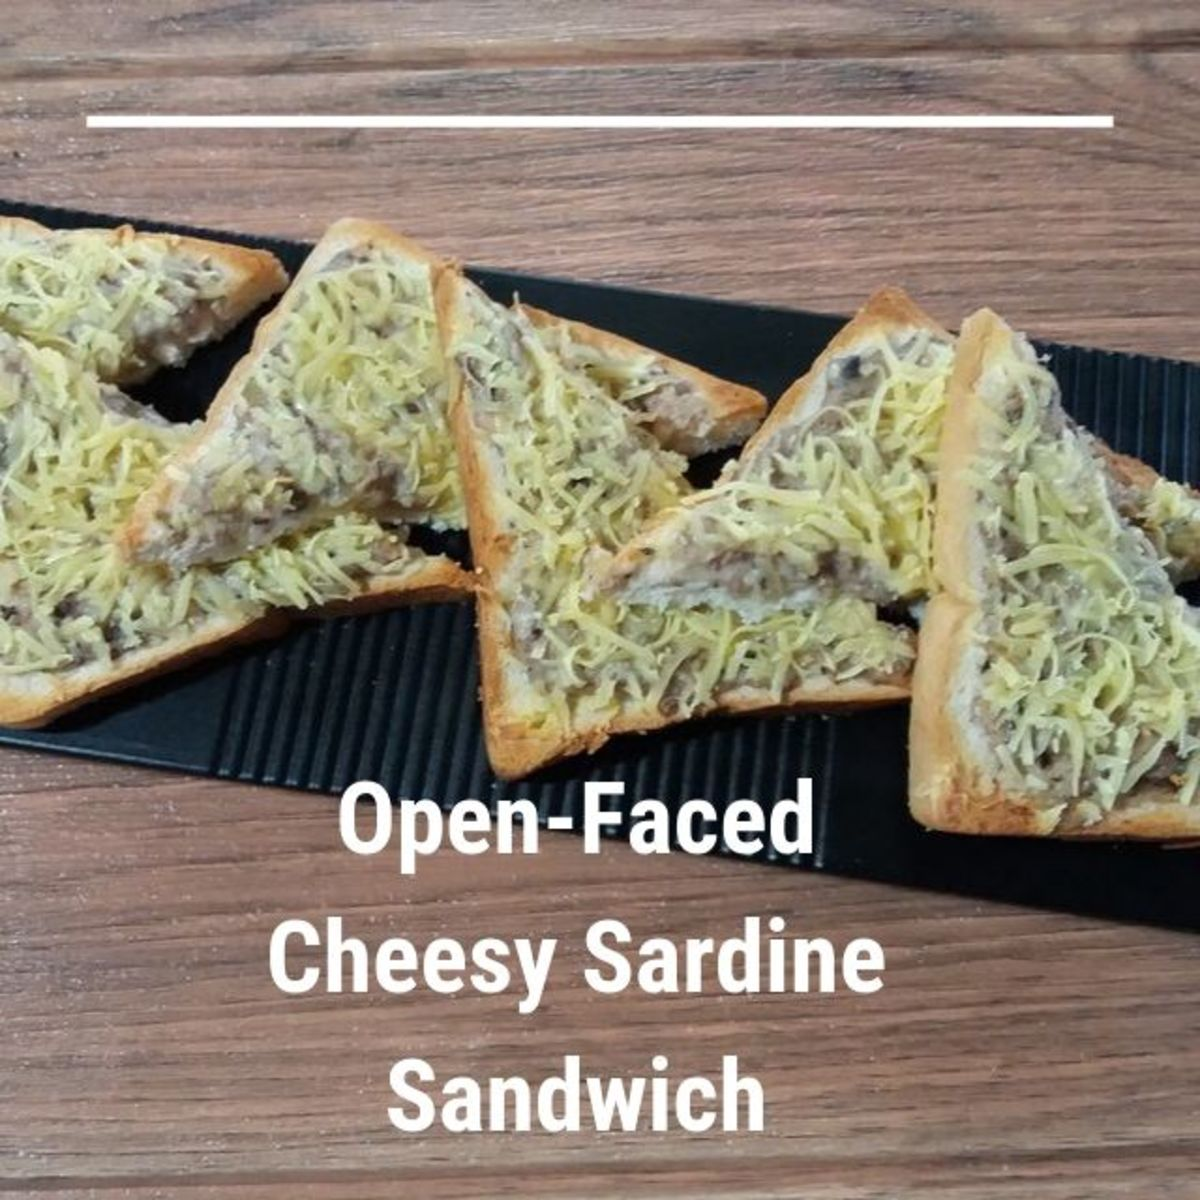 Learn how to prepare an open-faced cheesy sardine sandwich